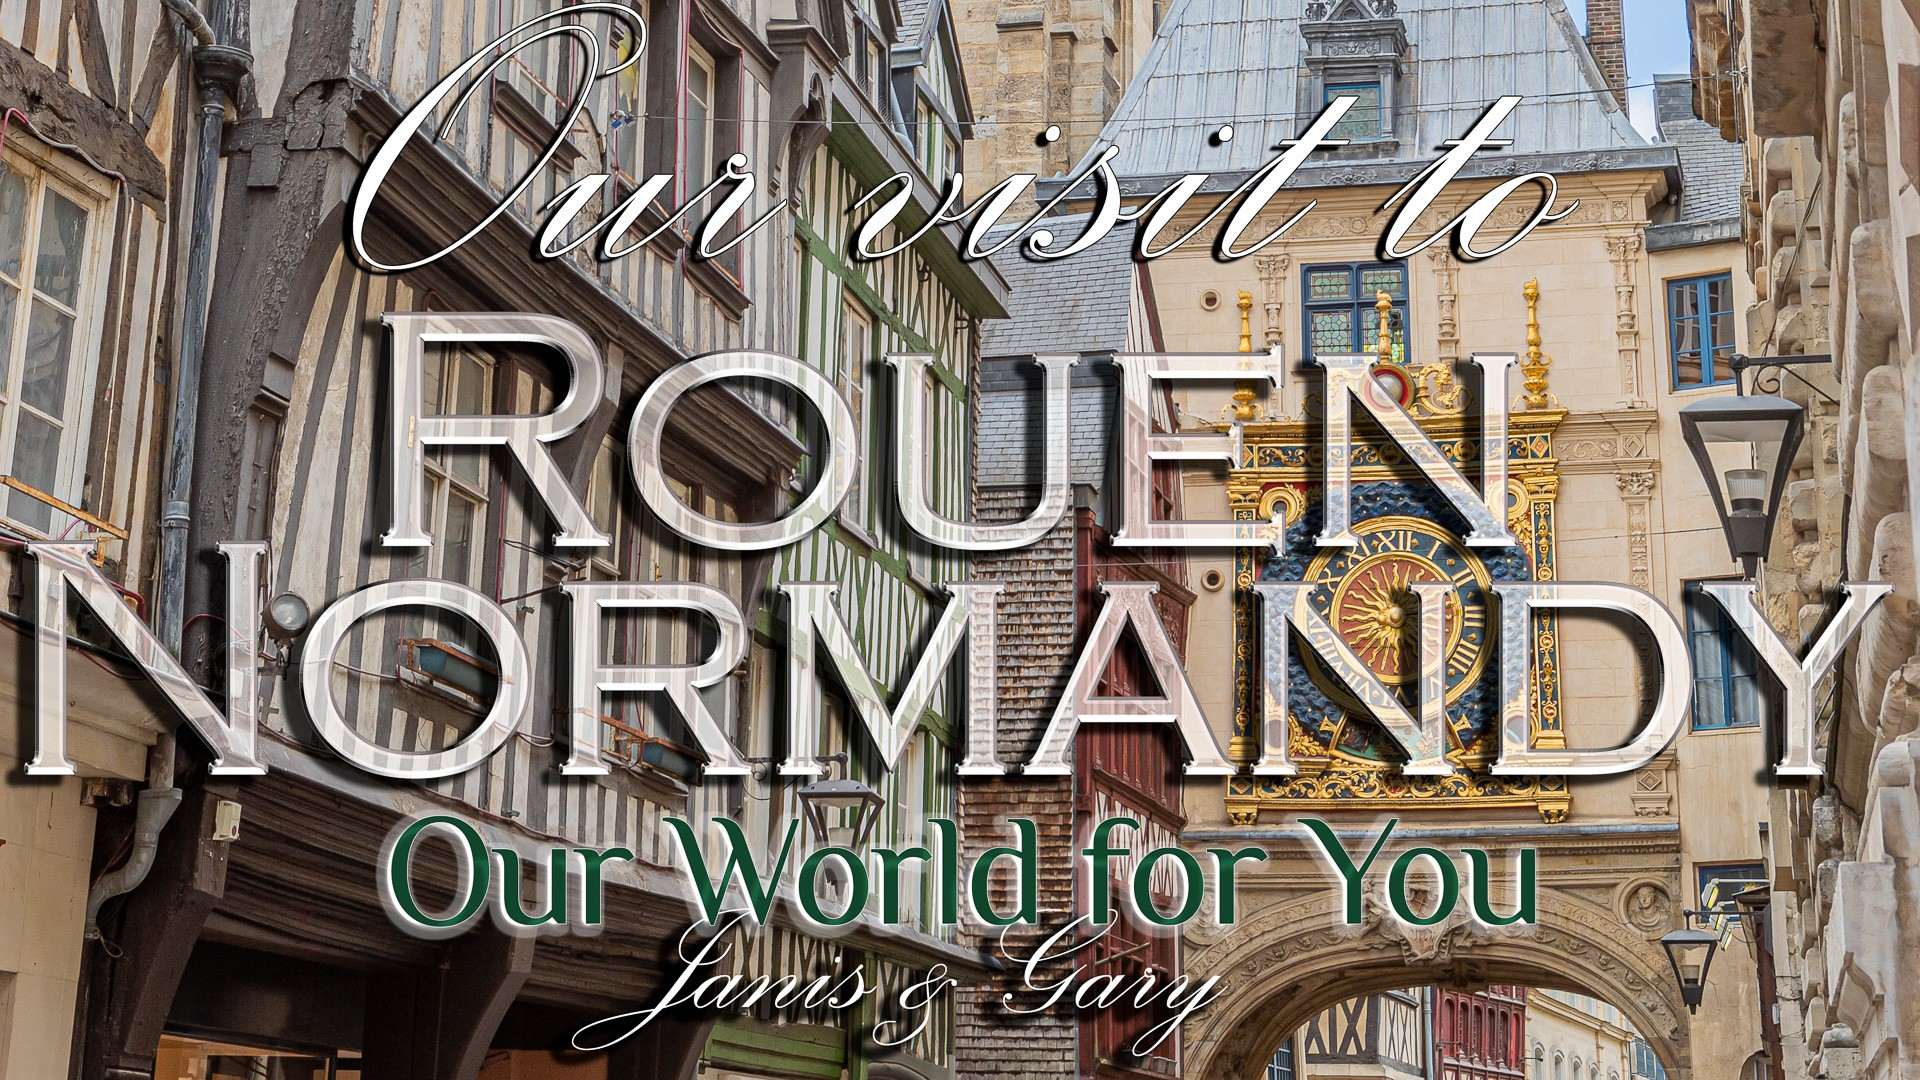 The Thumbnail of our video - ' A visit to the historic city of Rouen, Normandy, France '